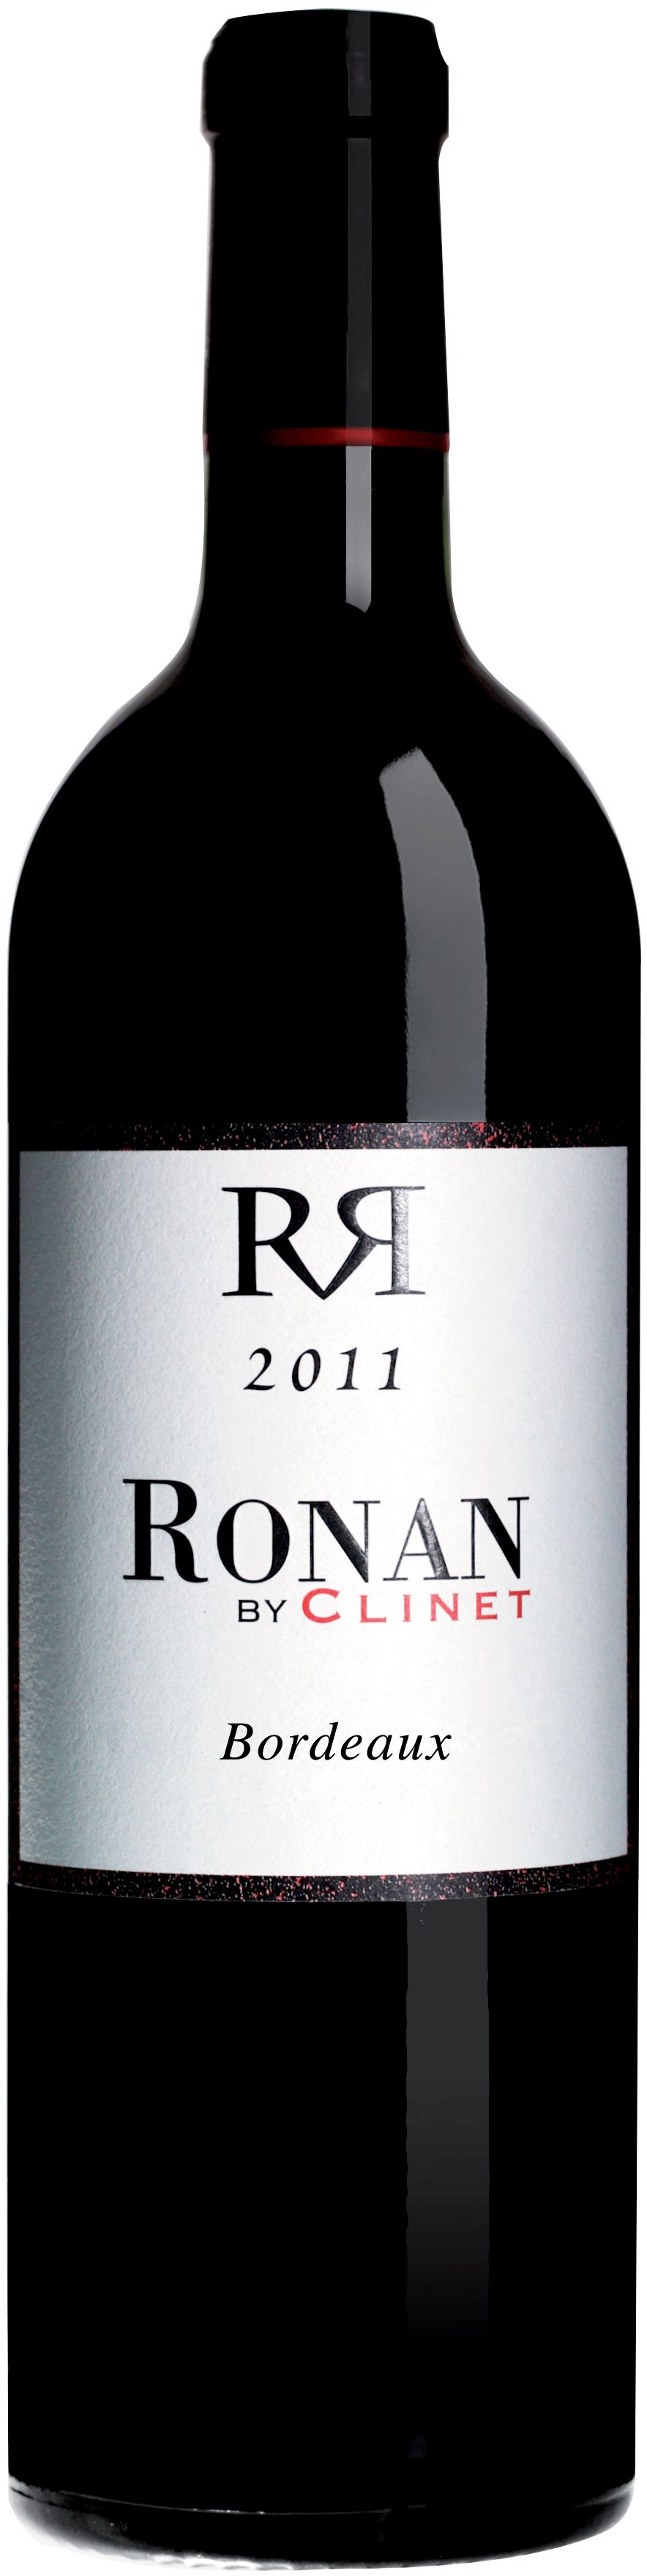 Chateau Clinet, Ronan By Clinet Rouge, 2011